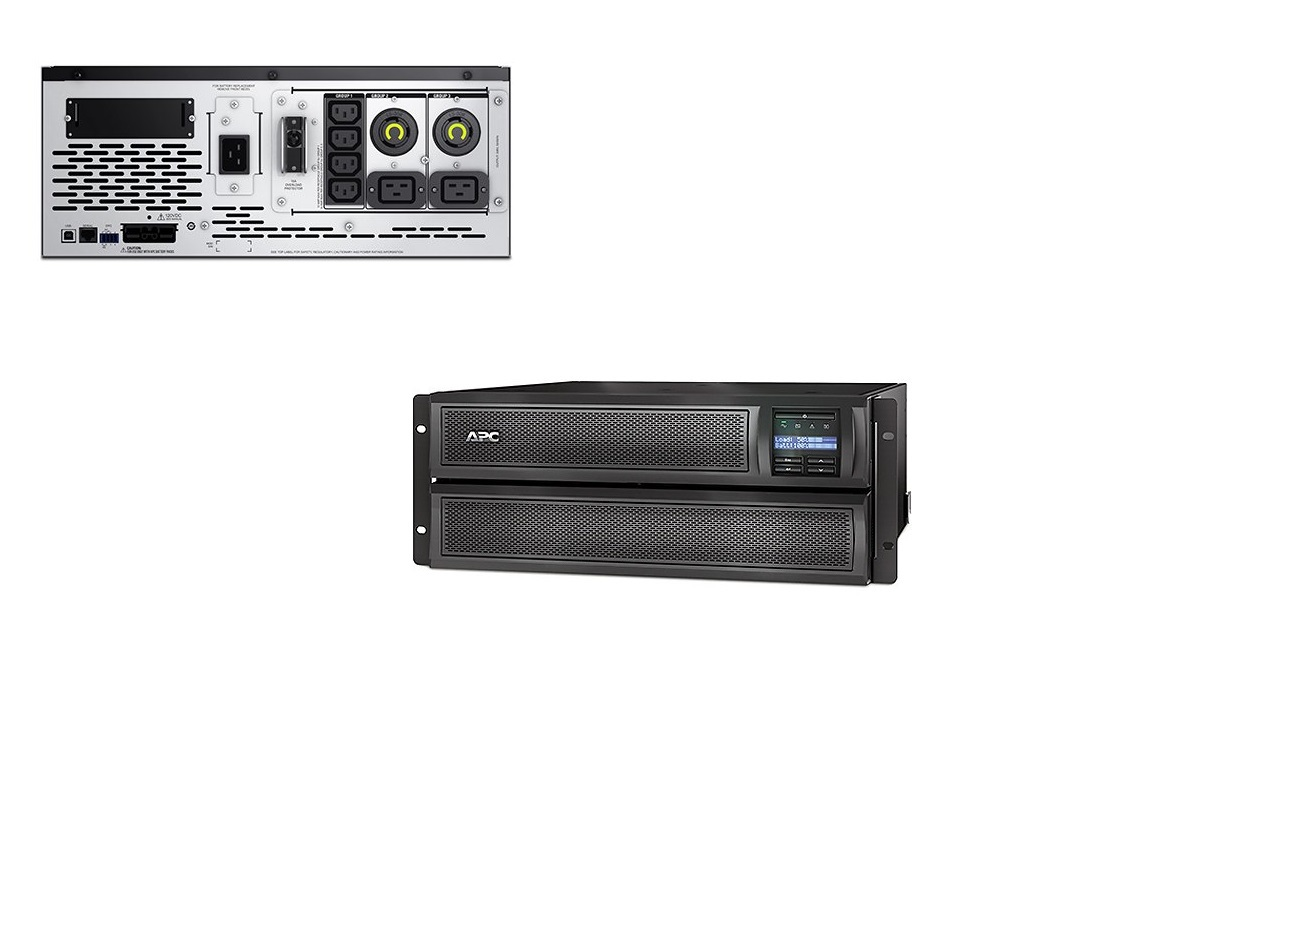 Schneider Electric Smart-UPS X 3000VA 2700Watts Short Depth 4U Tower Rack Convertible LCD 208V SMX3000HVT